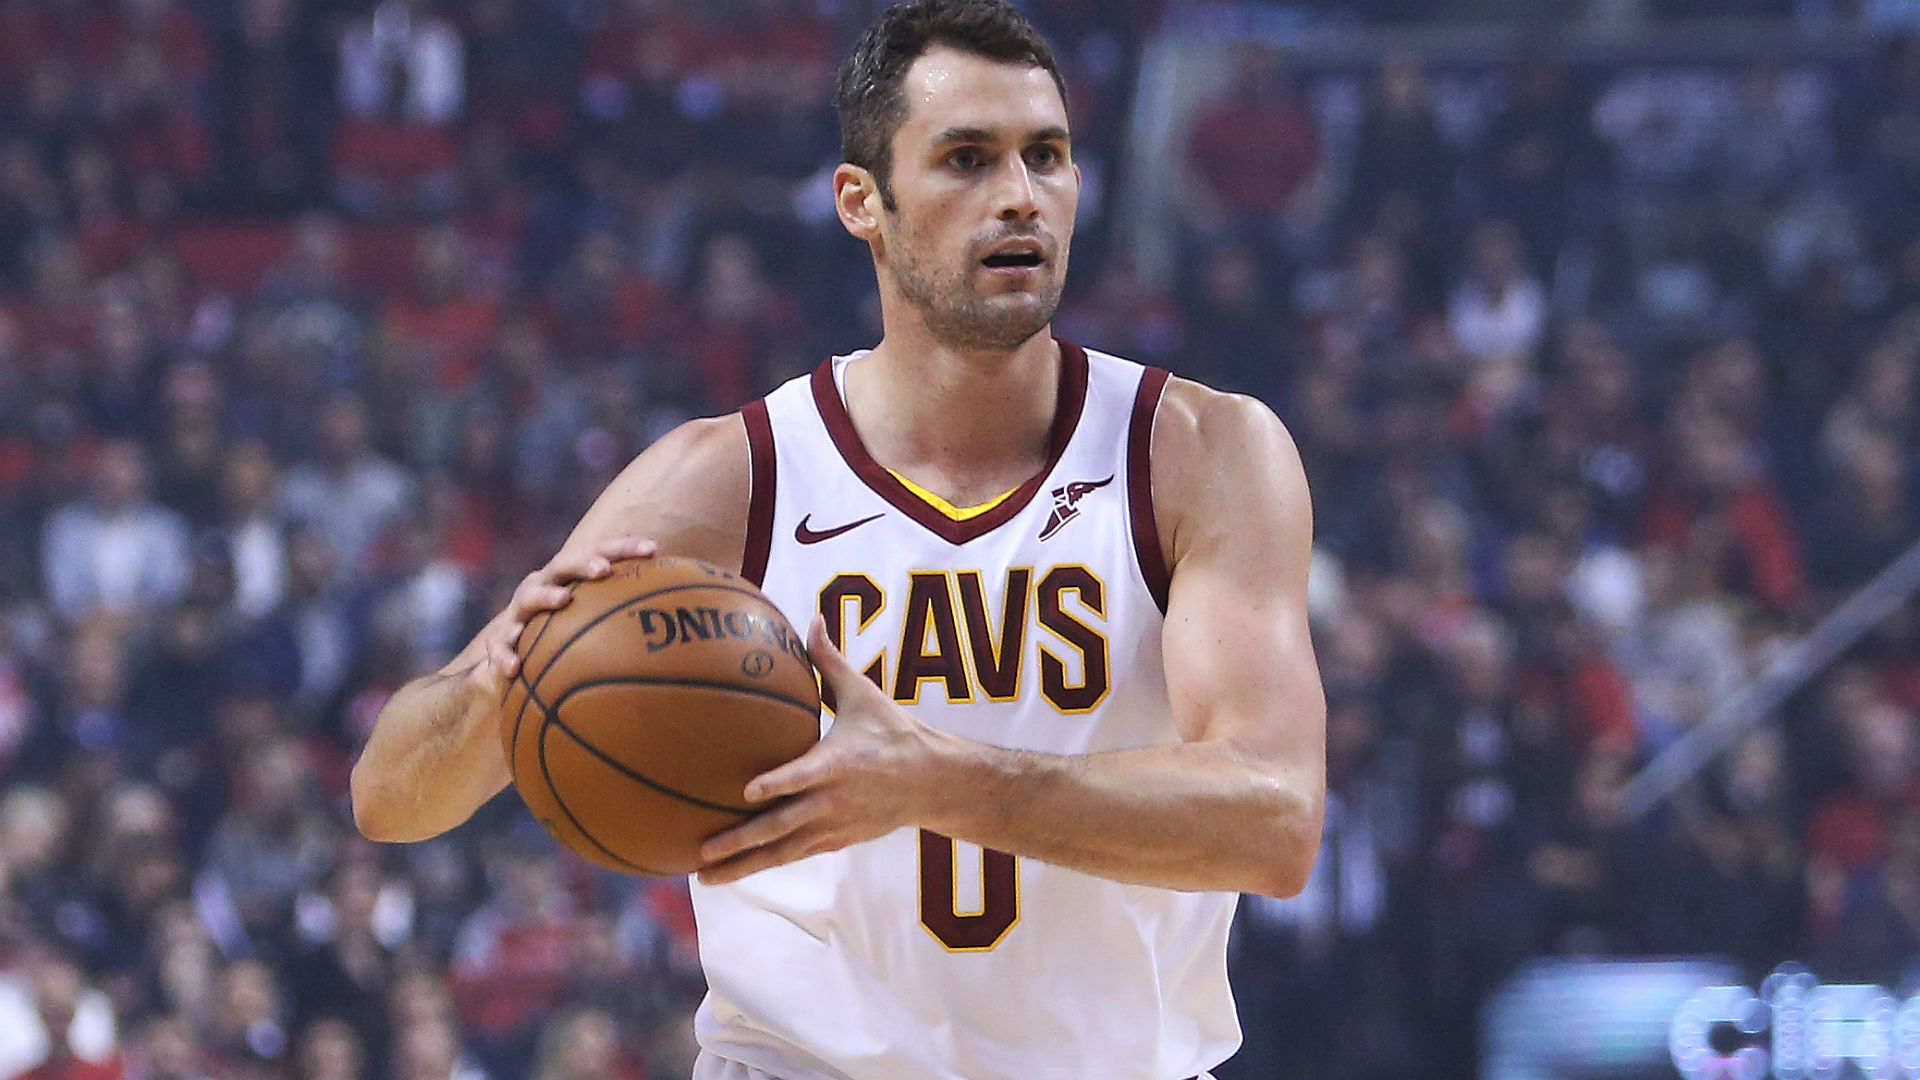 NBA trade rumors: Cavaliers have had 'no discussions' about dealing Kevin Love